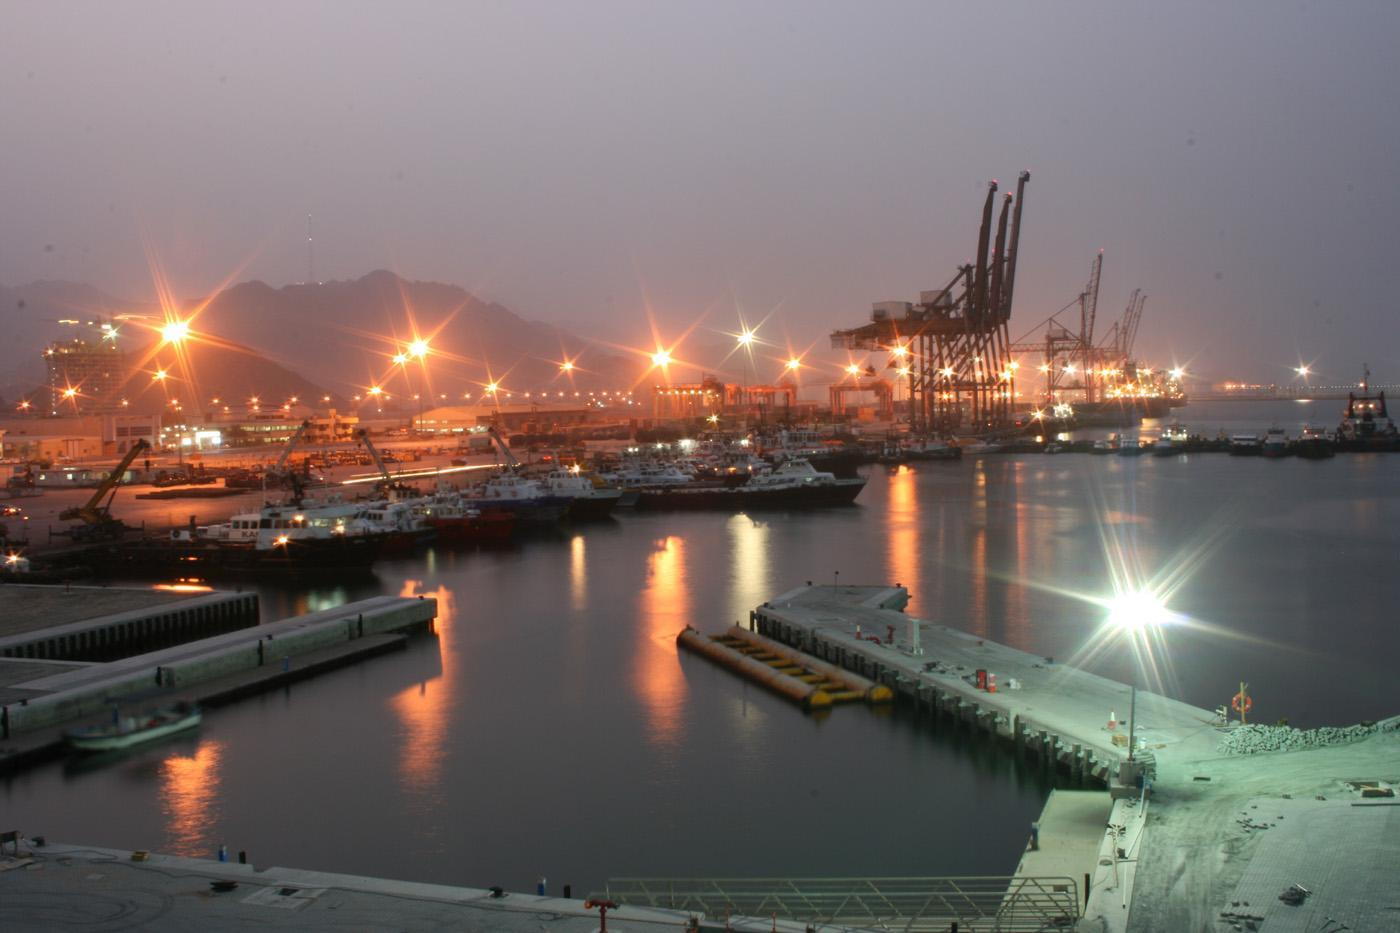 In January 2019, the Port of Fujairah decided to ban the use of open-loop scrubbers in its waters.